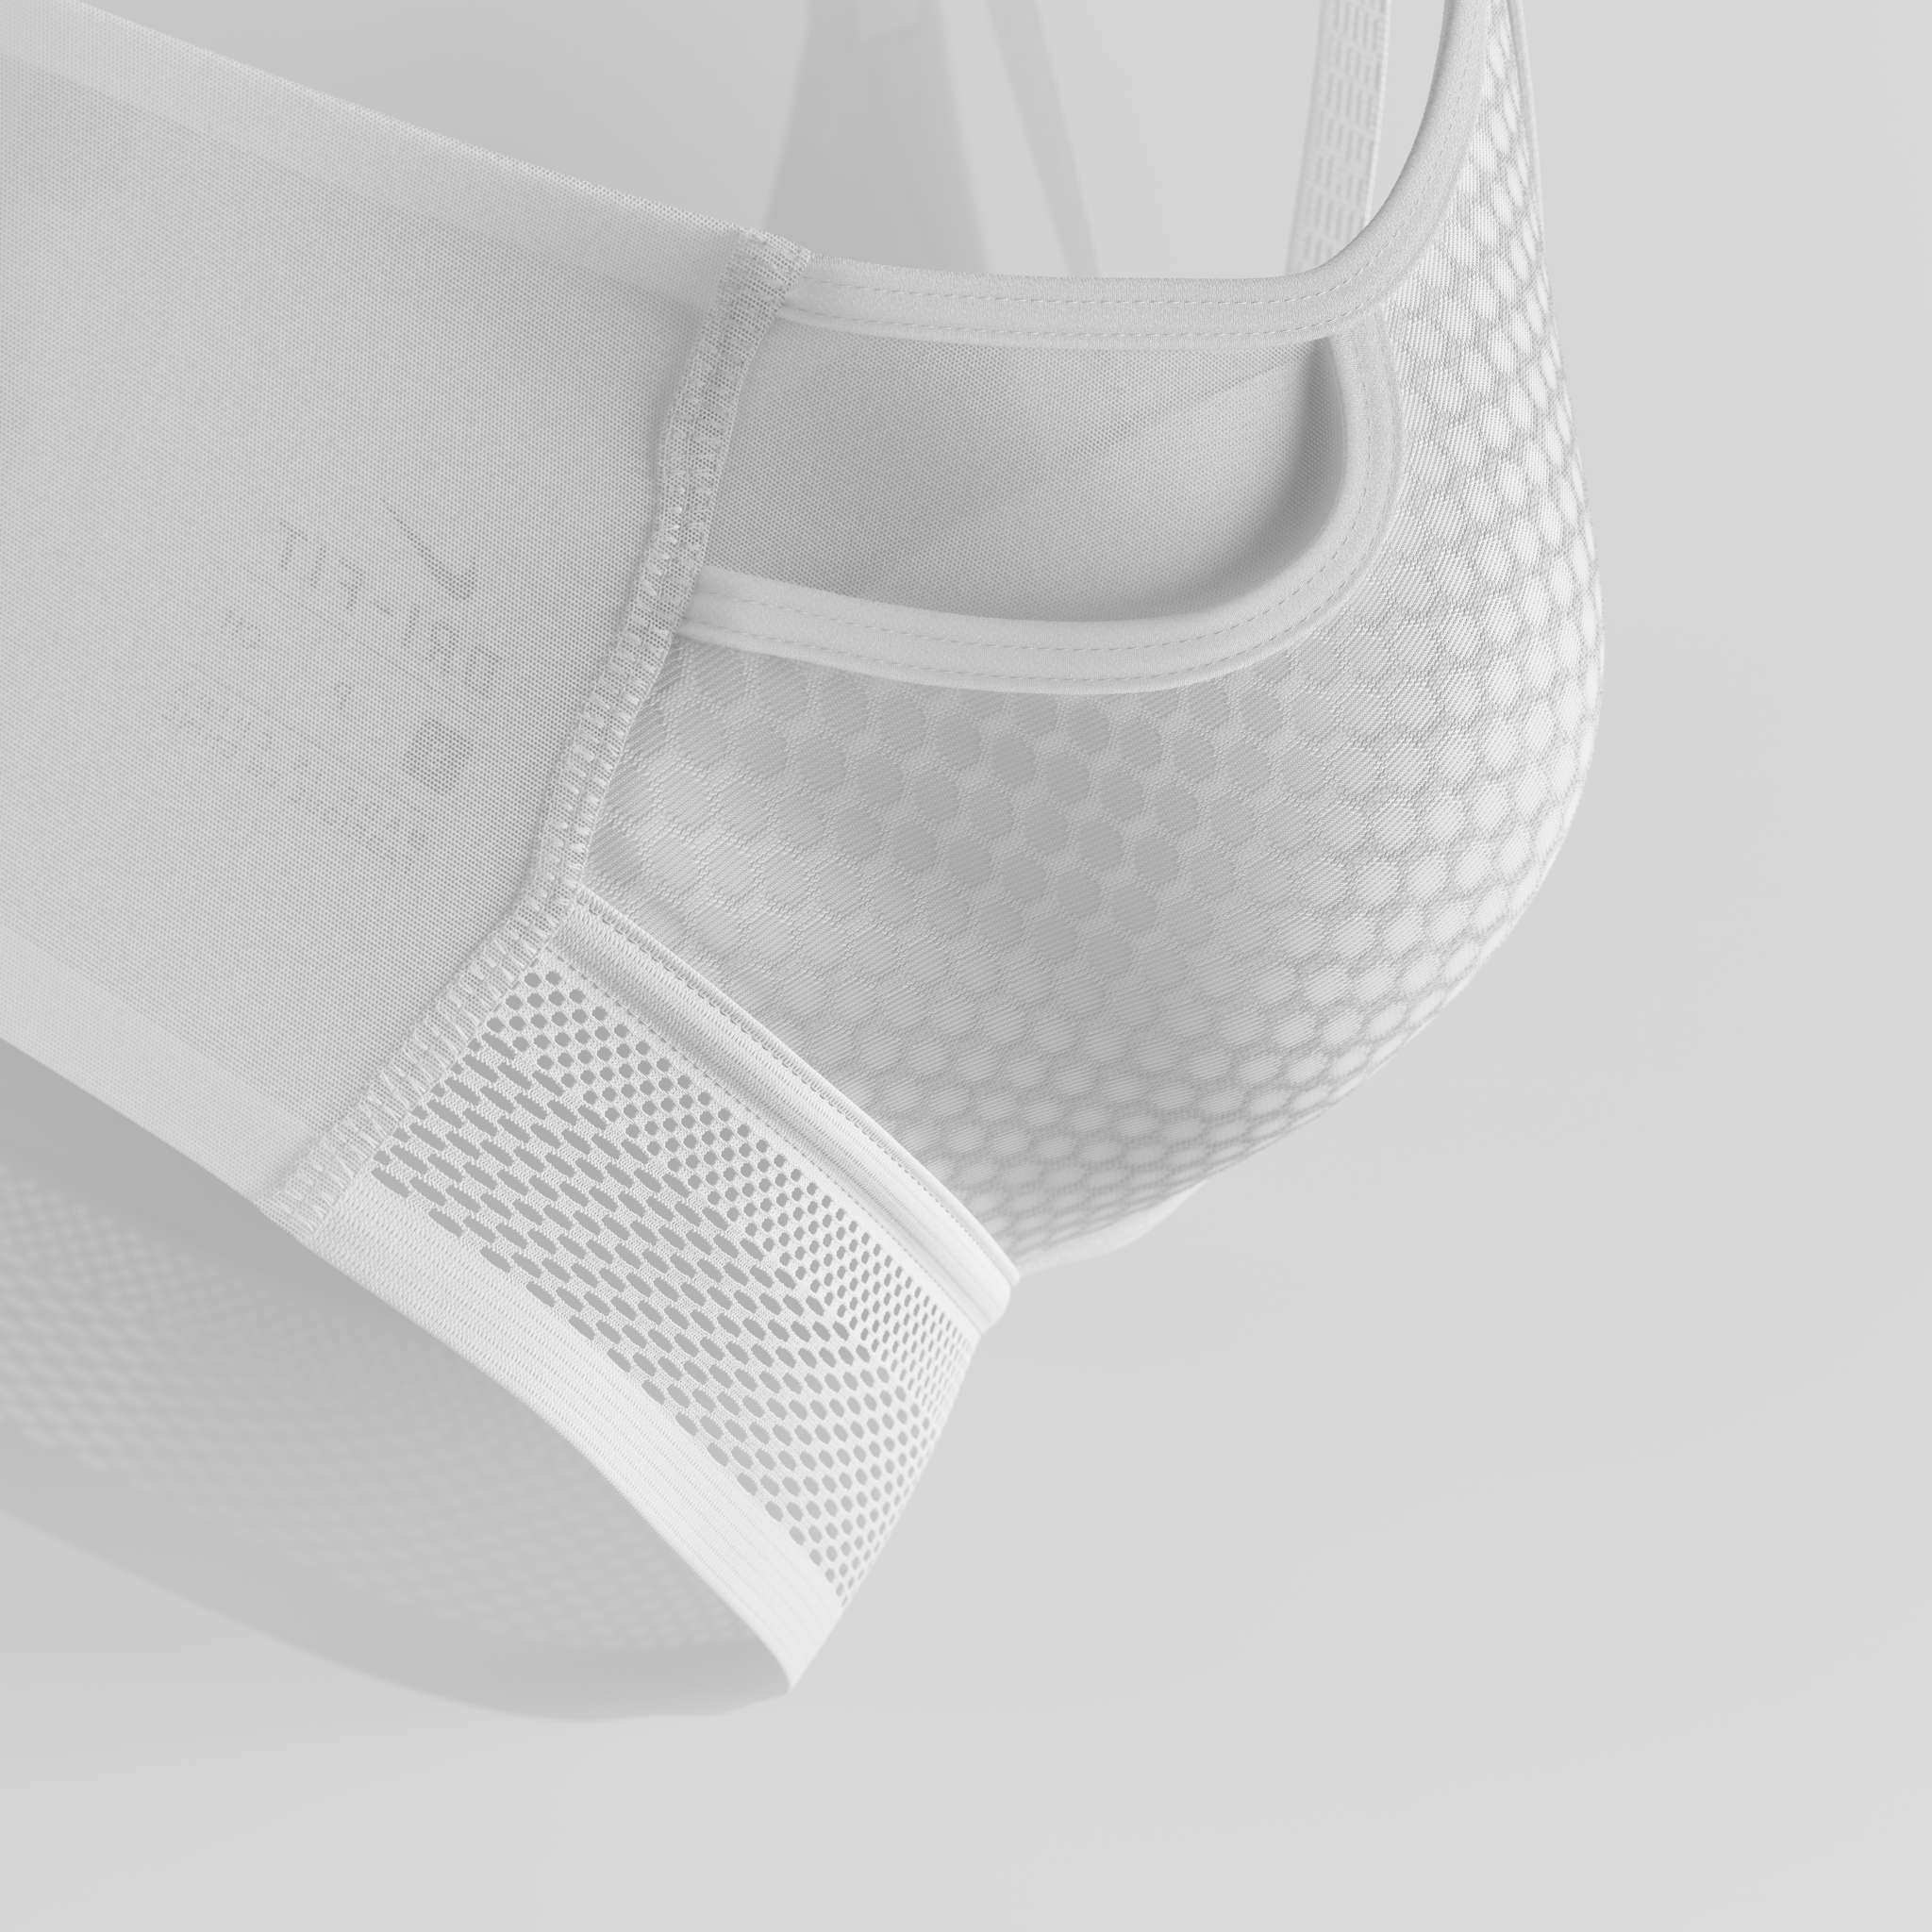 Nike_Ultrabreathe_Bra_Indy_White_Closeup_02_2K